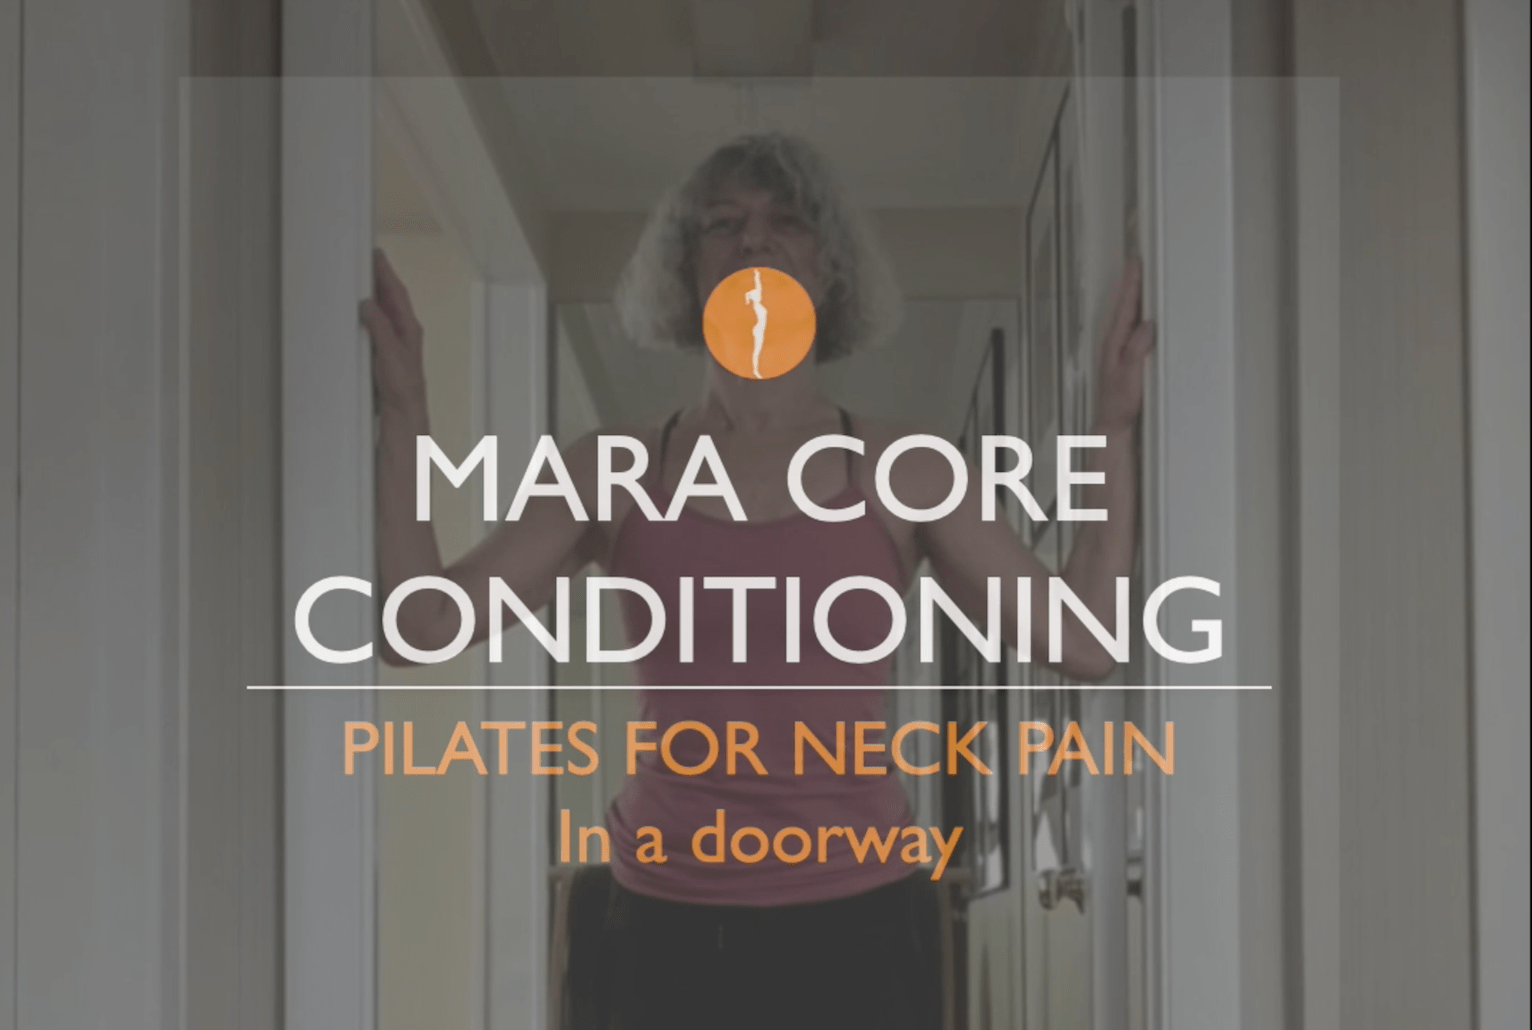 Mara Core Conditioning Pilates for Neck Pain